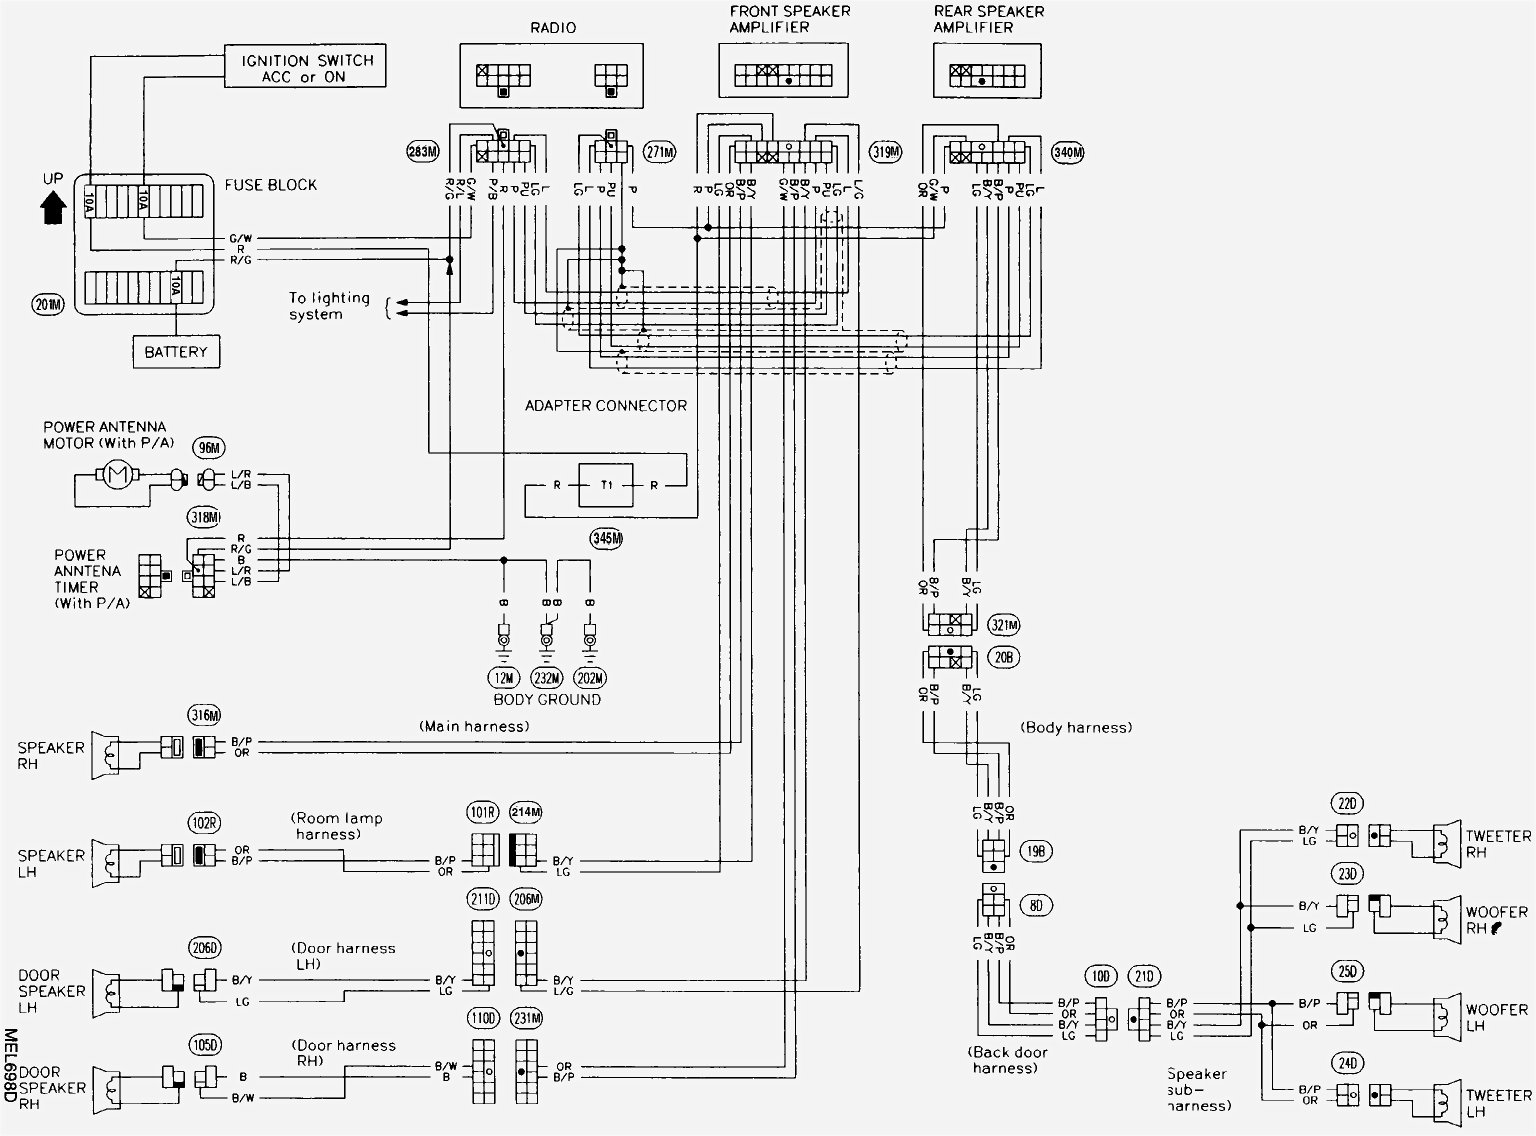 true freezer t 23f wiring diagram Collection-True Freezer T 49F Wiring Diagram hbphelp 12-q